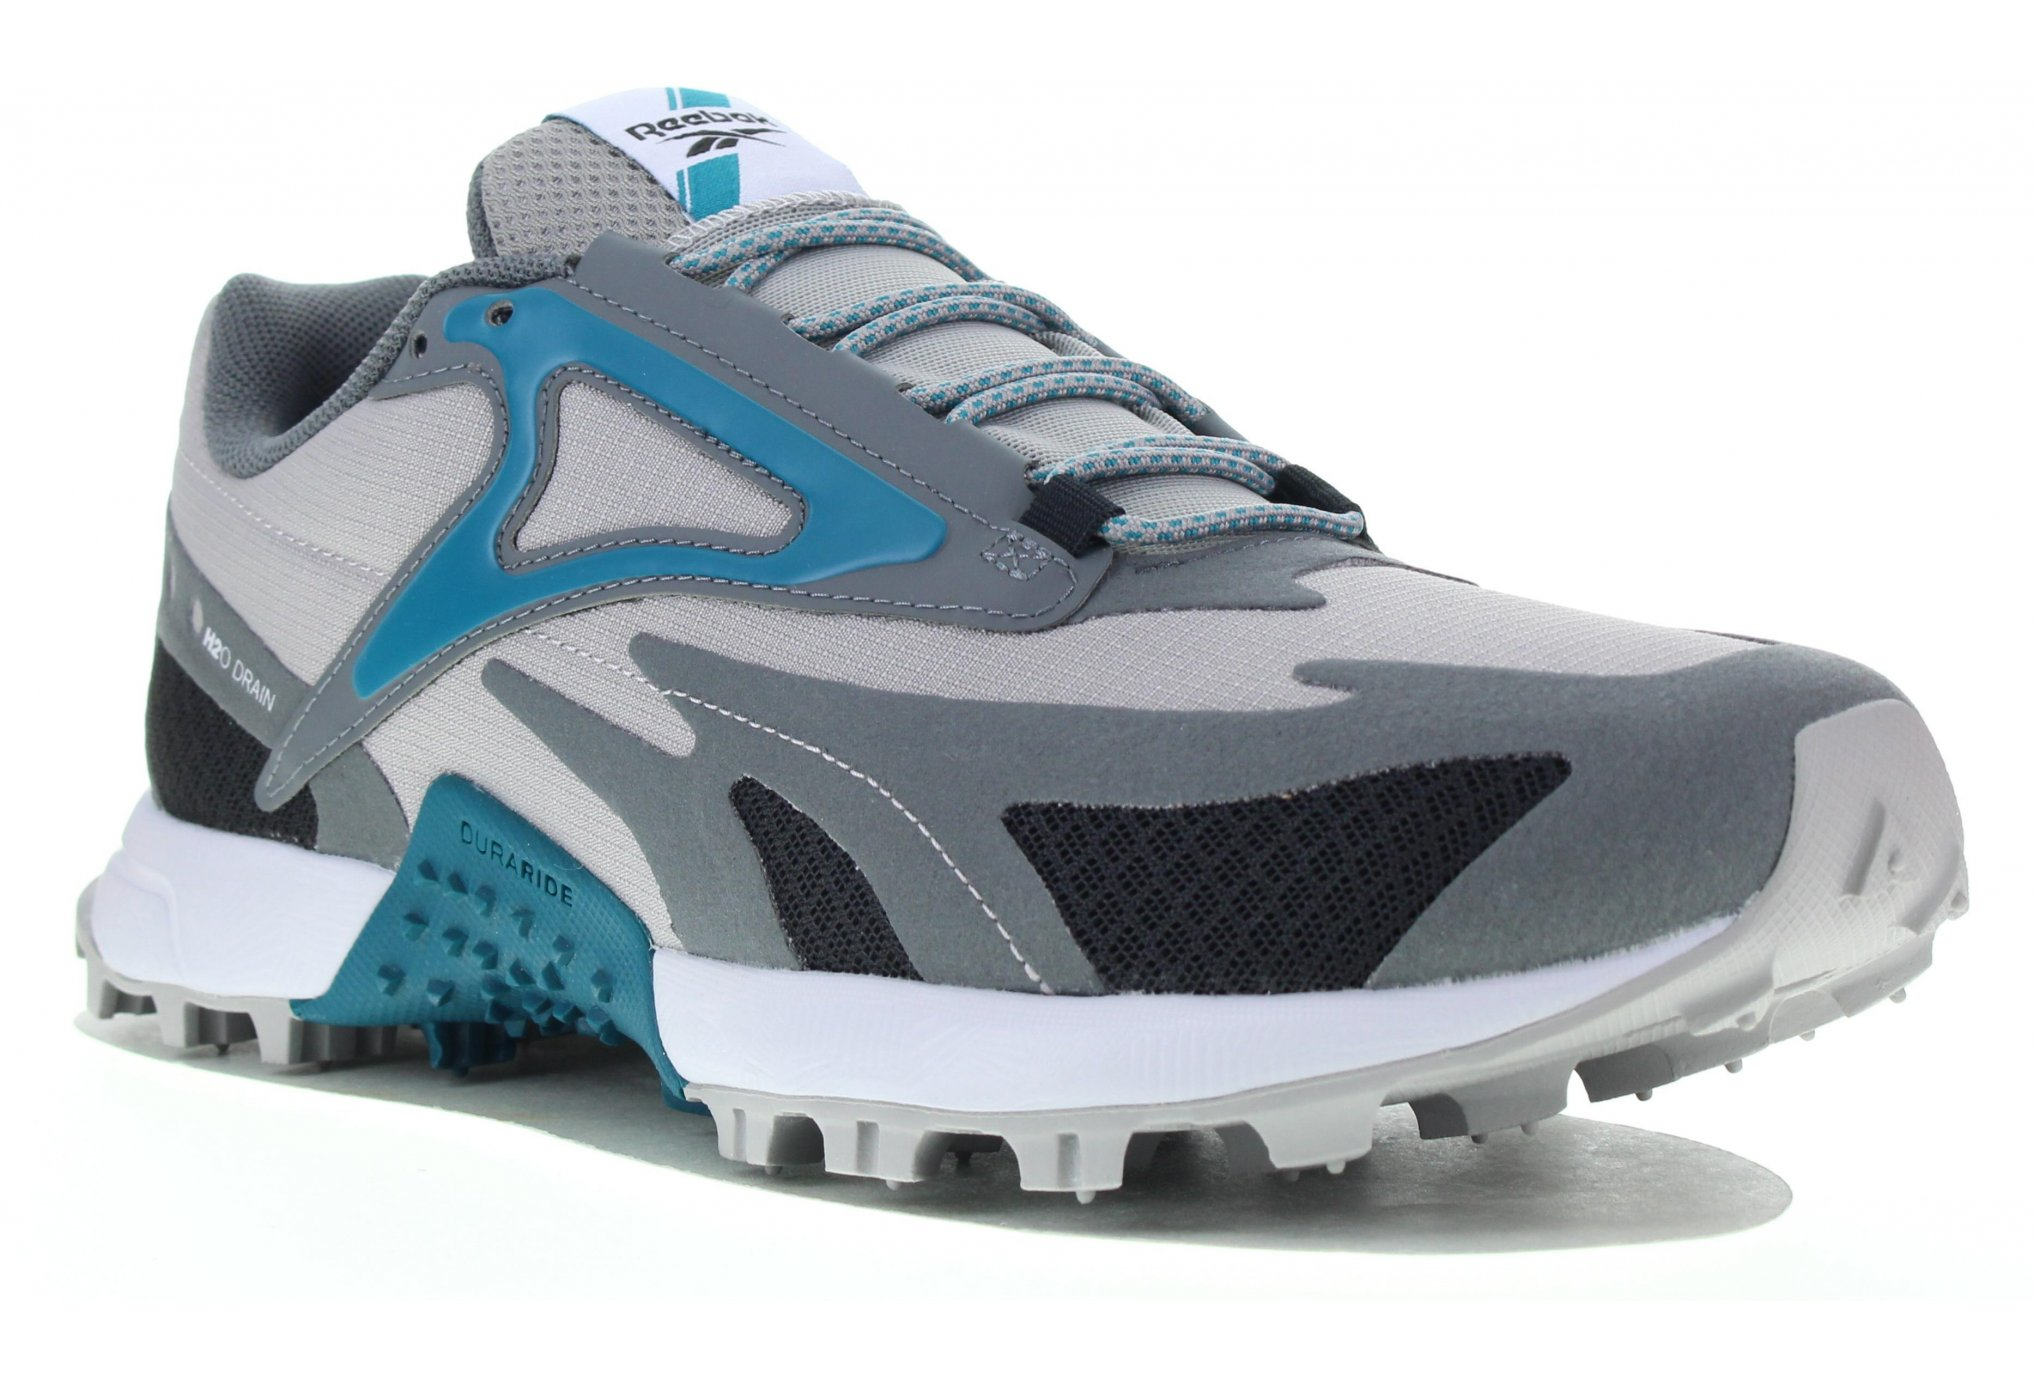 Reebok All Terrain Craze 2.0 W Chaussures running femme